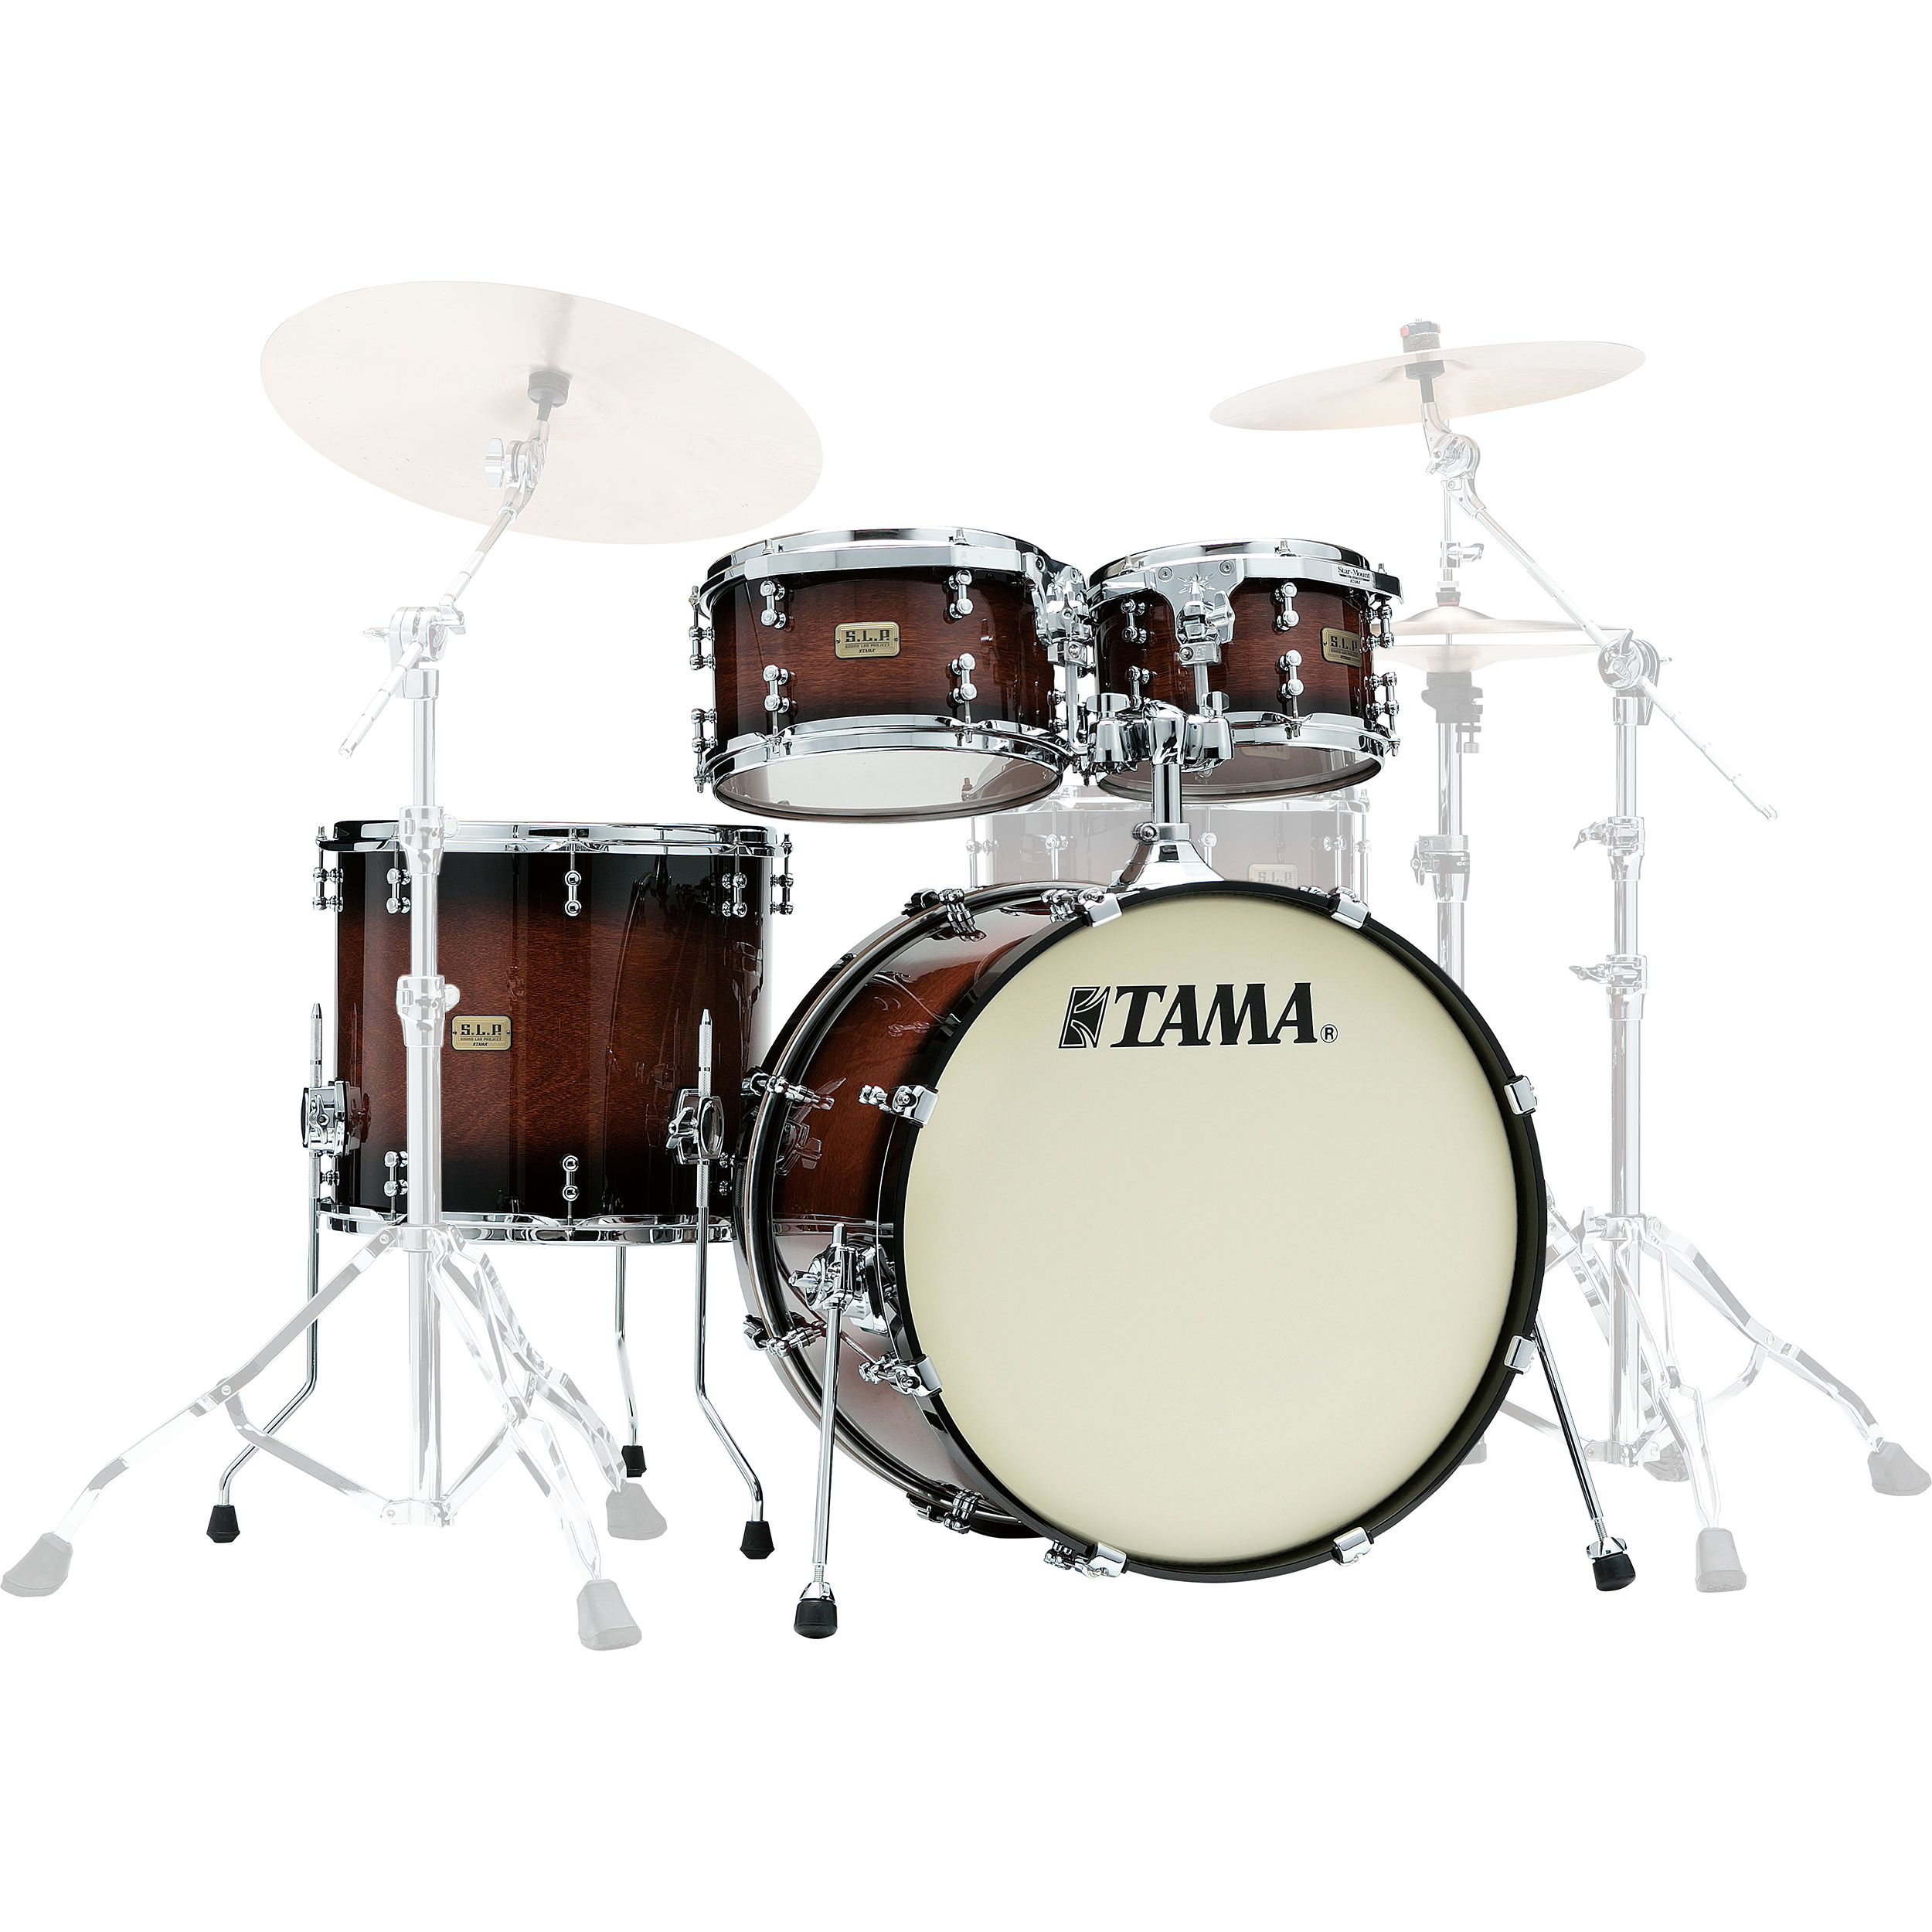 "Tama S.L.P. Dynamic Kapur 4-Piece Drum Set Shell Pack (22"" Bass, 10/12/16"" Toms) in Gloss Black Kapur Burst"